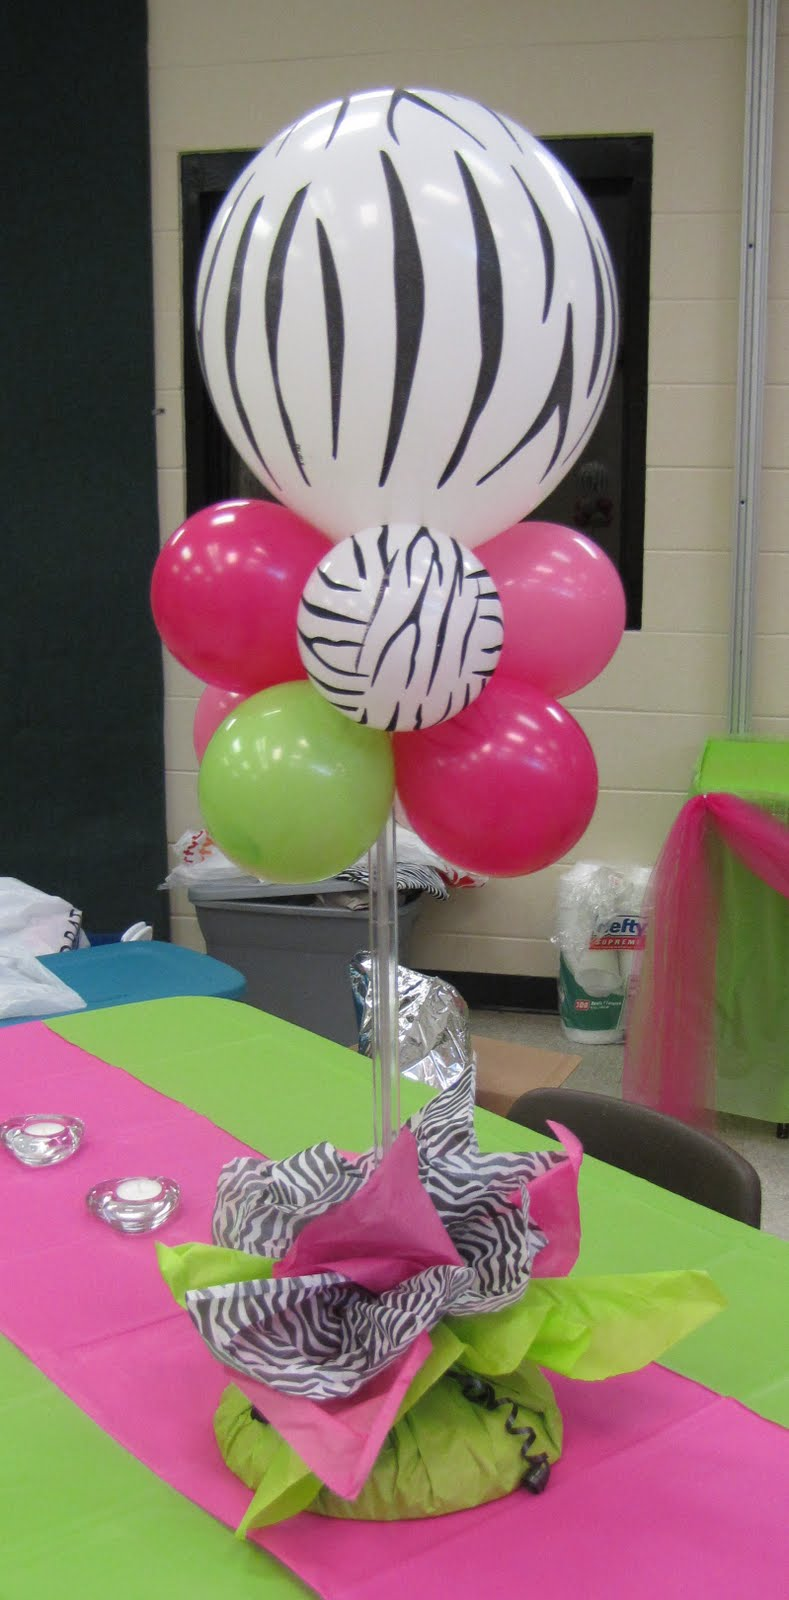 Party People Event Decorating Company Zebra Hot Pink And Lime Sweet 16 Fort Meade Community Center